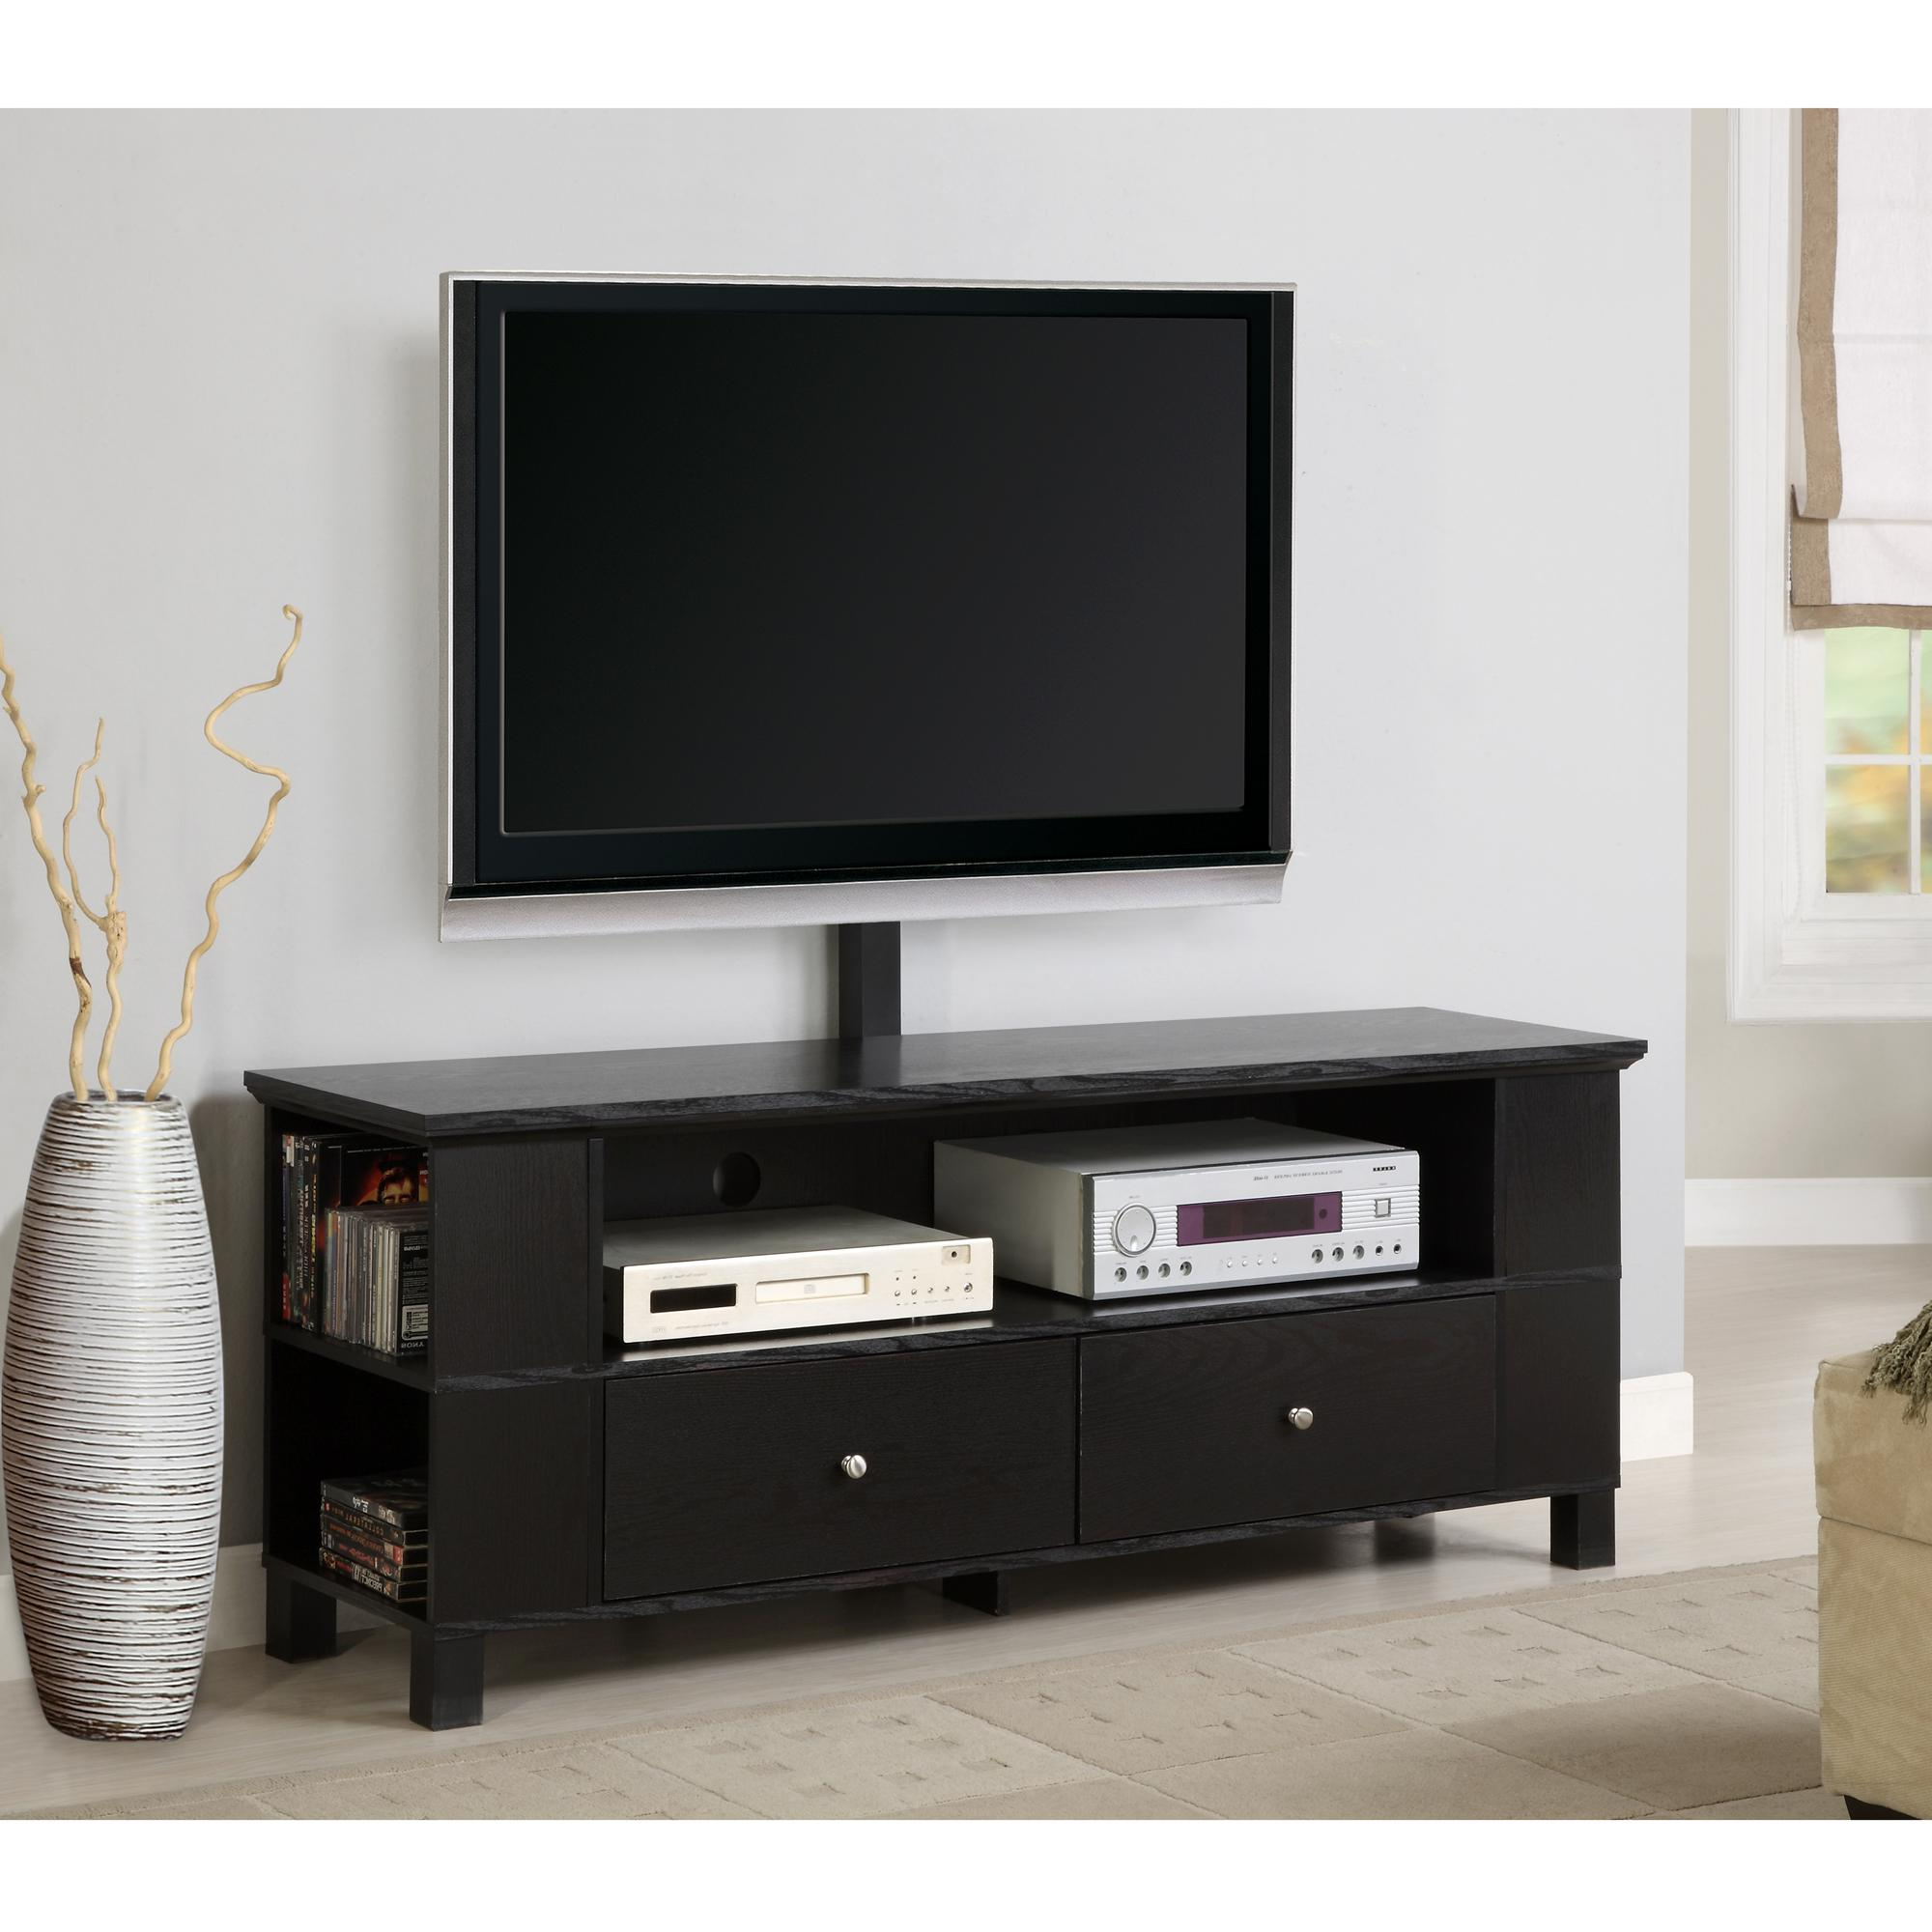 """Amazon – Walker Edison 60"""" Class Black Wood Tv Stand With Well Known Kasen Tv Stands For Tvs Up To 60"""" (View 6 of 25)"""